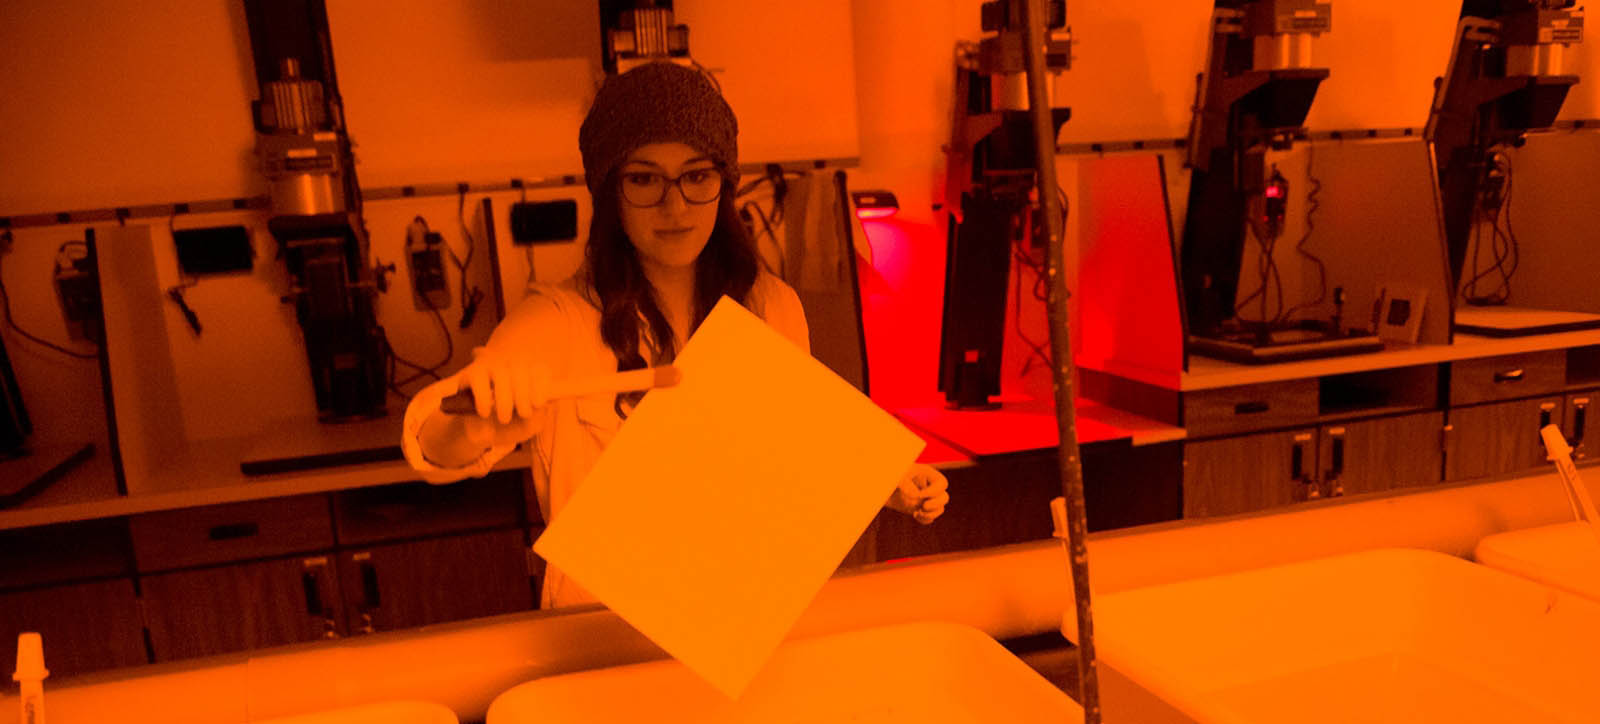 An MSU Photography student develops photographs in a darkroom.